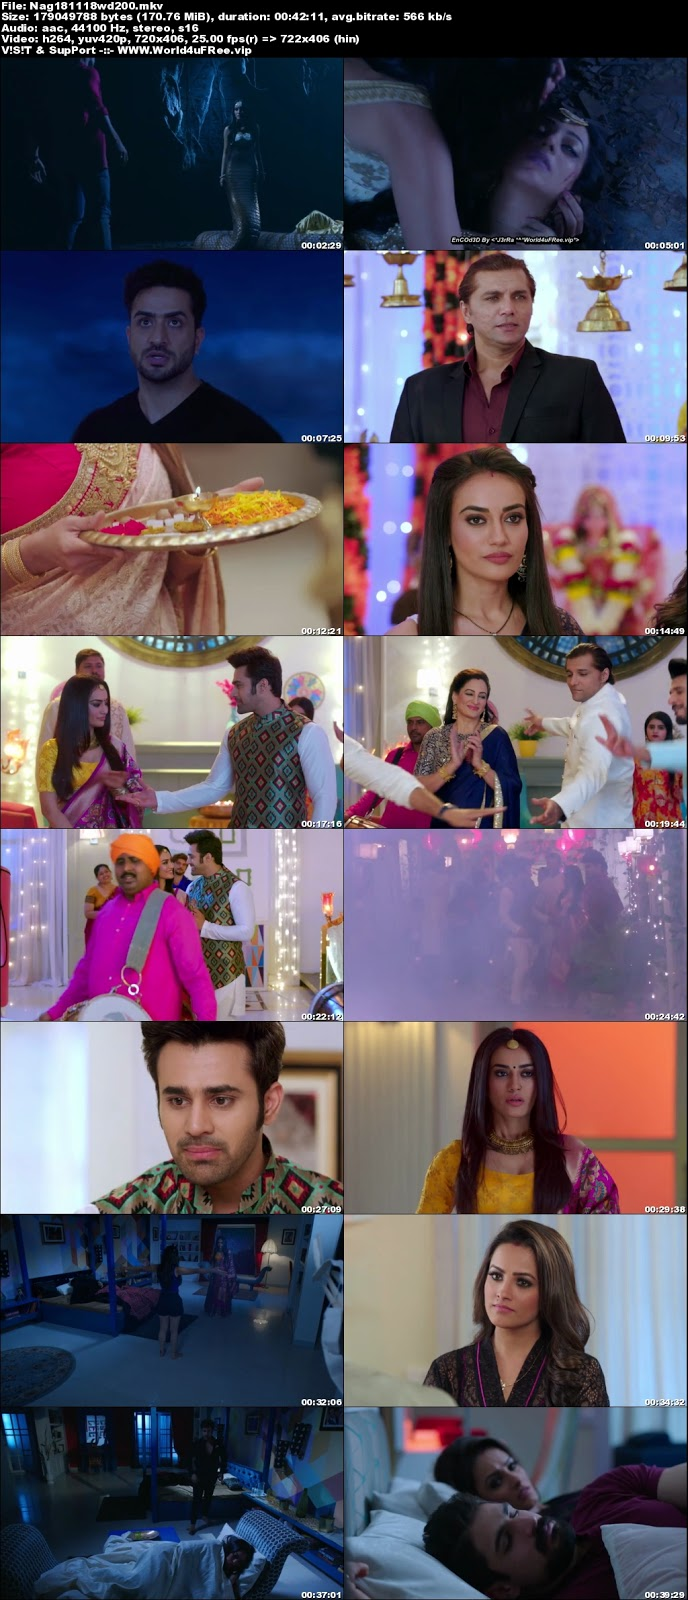 Naagin Season 3 2018 Episode 50 WEBRip 480p 200Mb x264 world4ufree.vip tv show Naagin Season 3 hindi tv show Naagin Season 3 Colours tv show compressed small size free download or watch online at world4ufree.vip